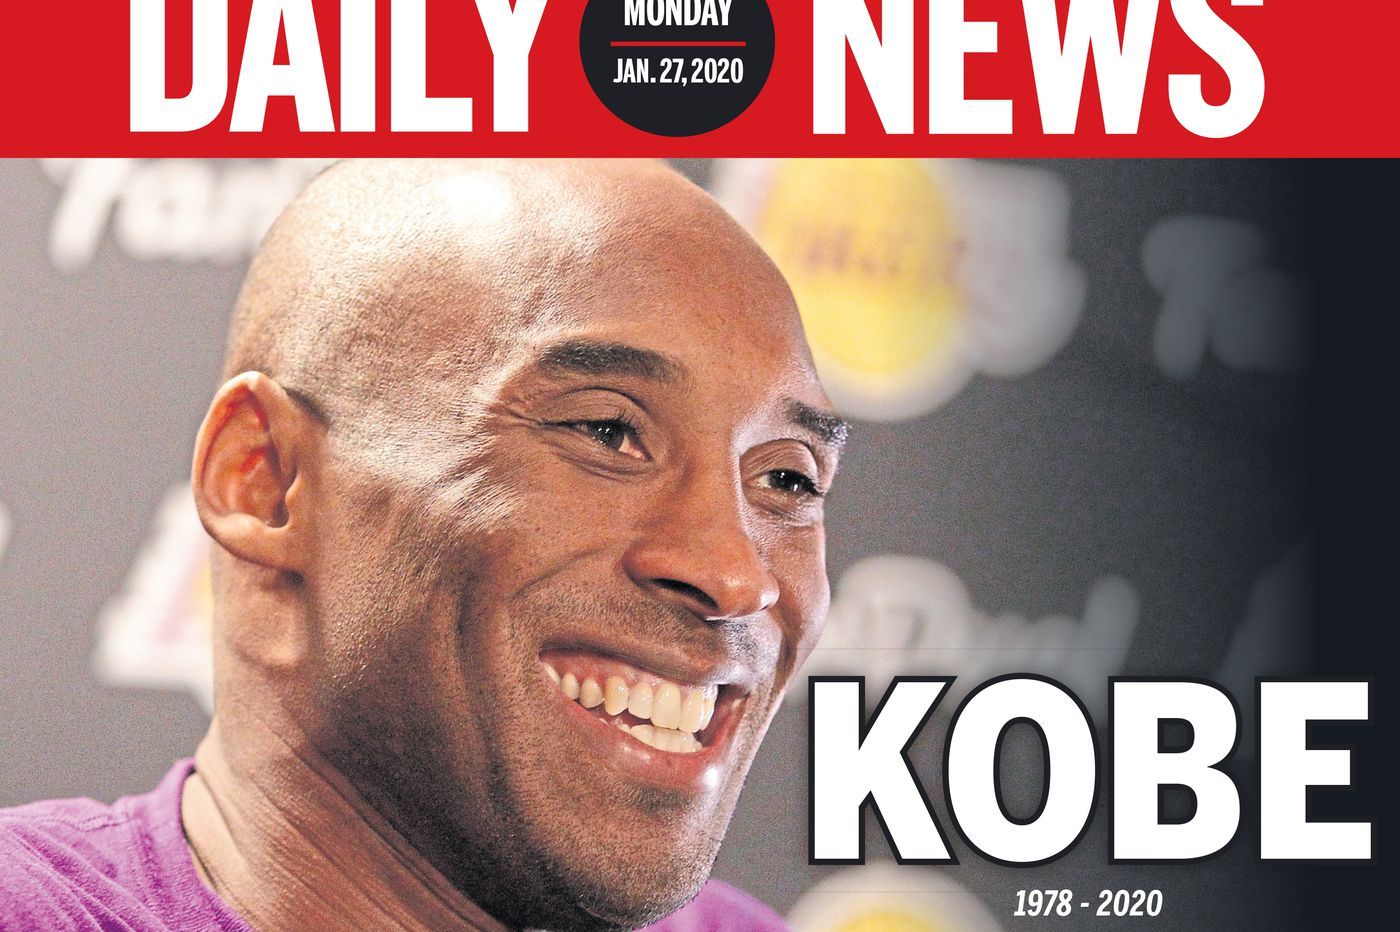 Kobe Bryant remembered on newspaper front pages